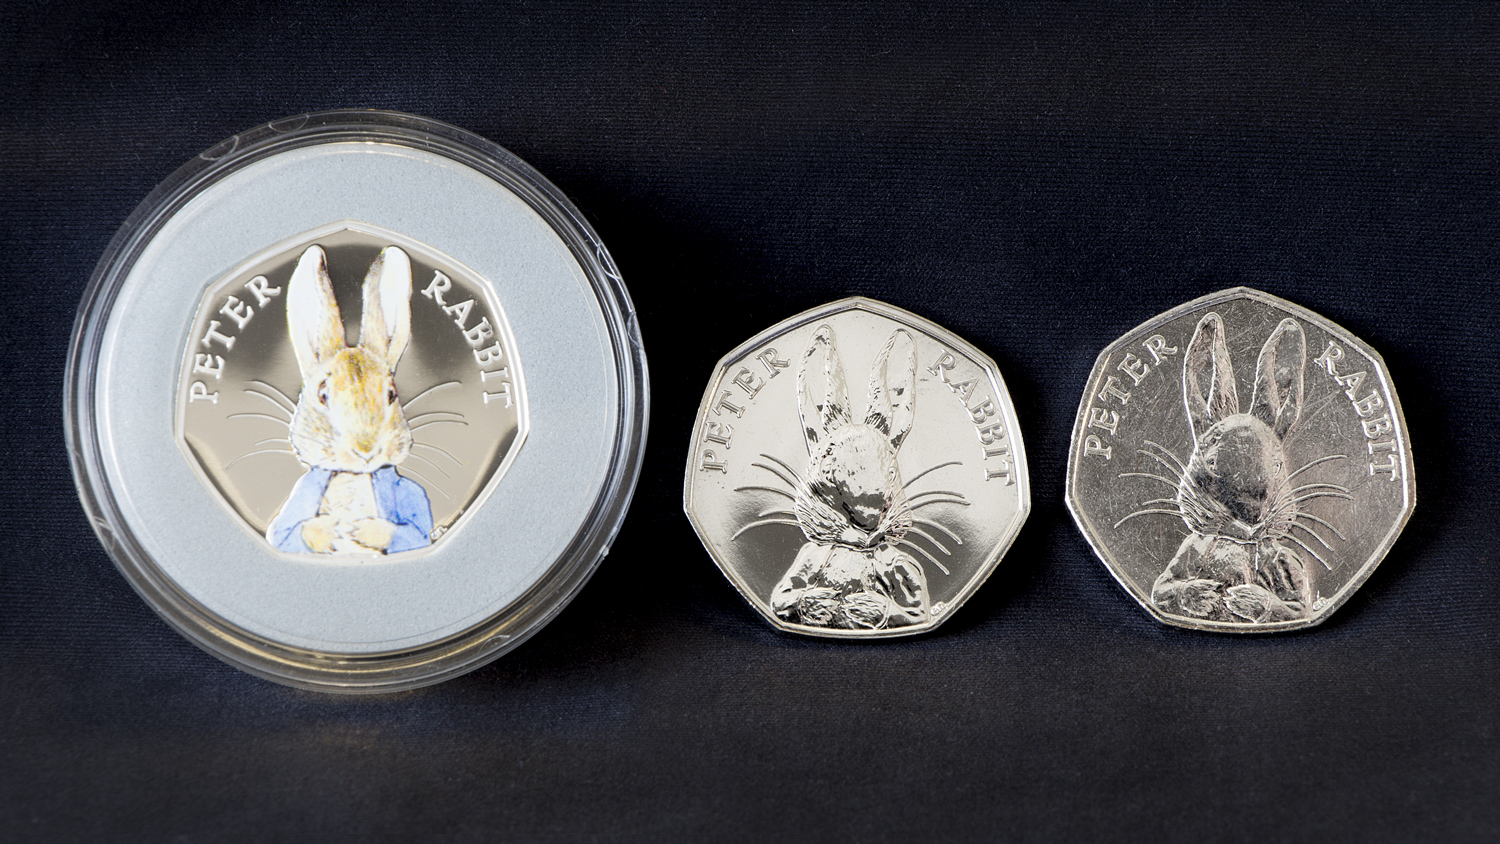 st peter rabbit silver proof bu circulating 50p coins1 - The truth behind the Beatrix Potter 50ps